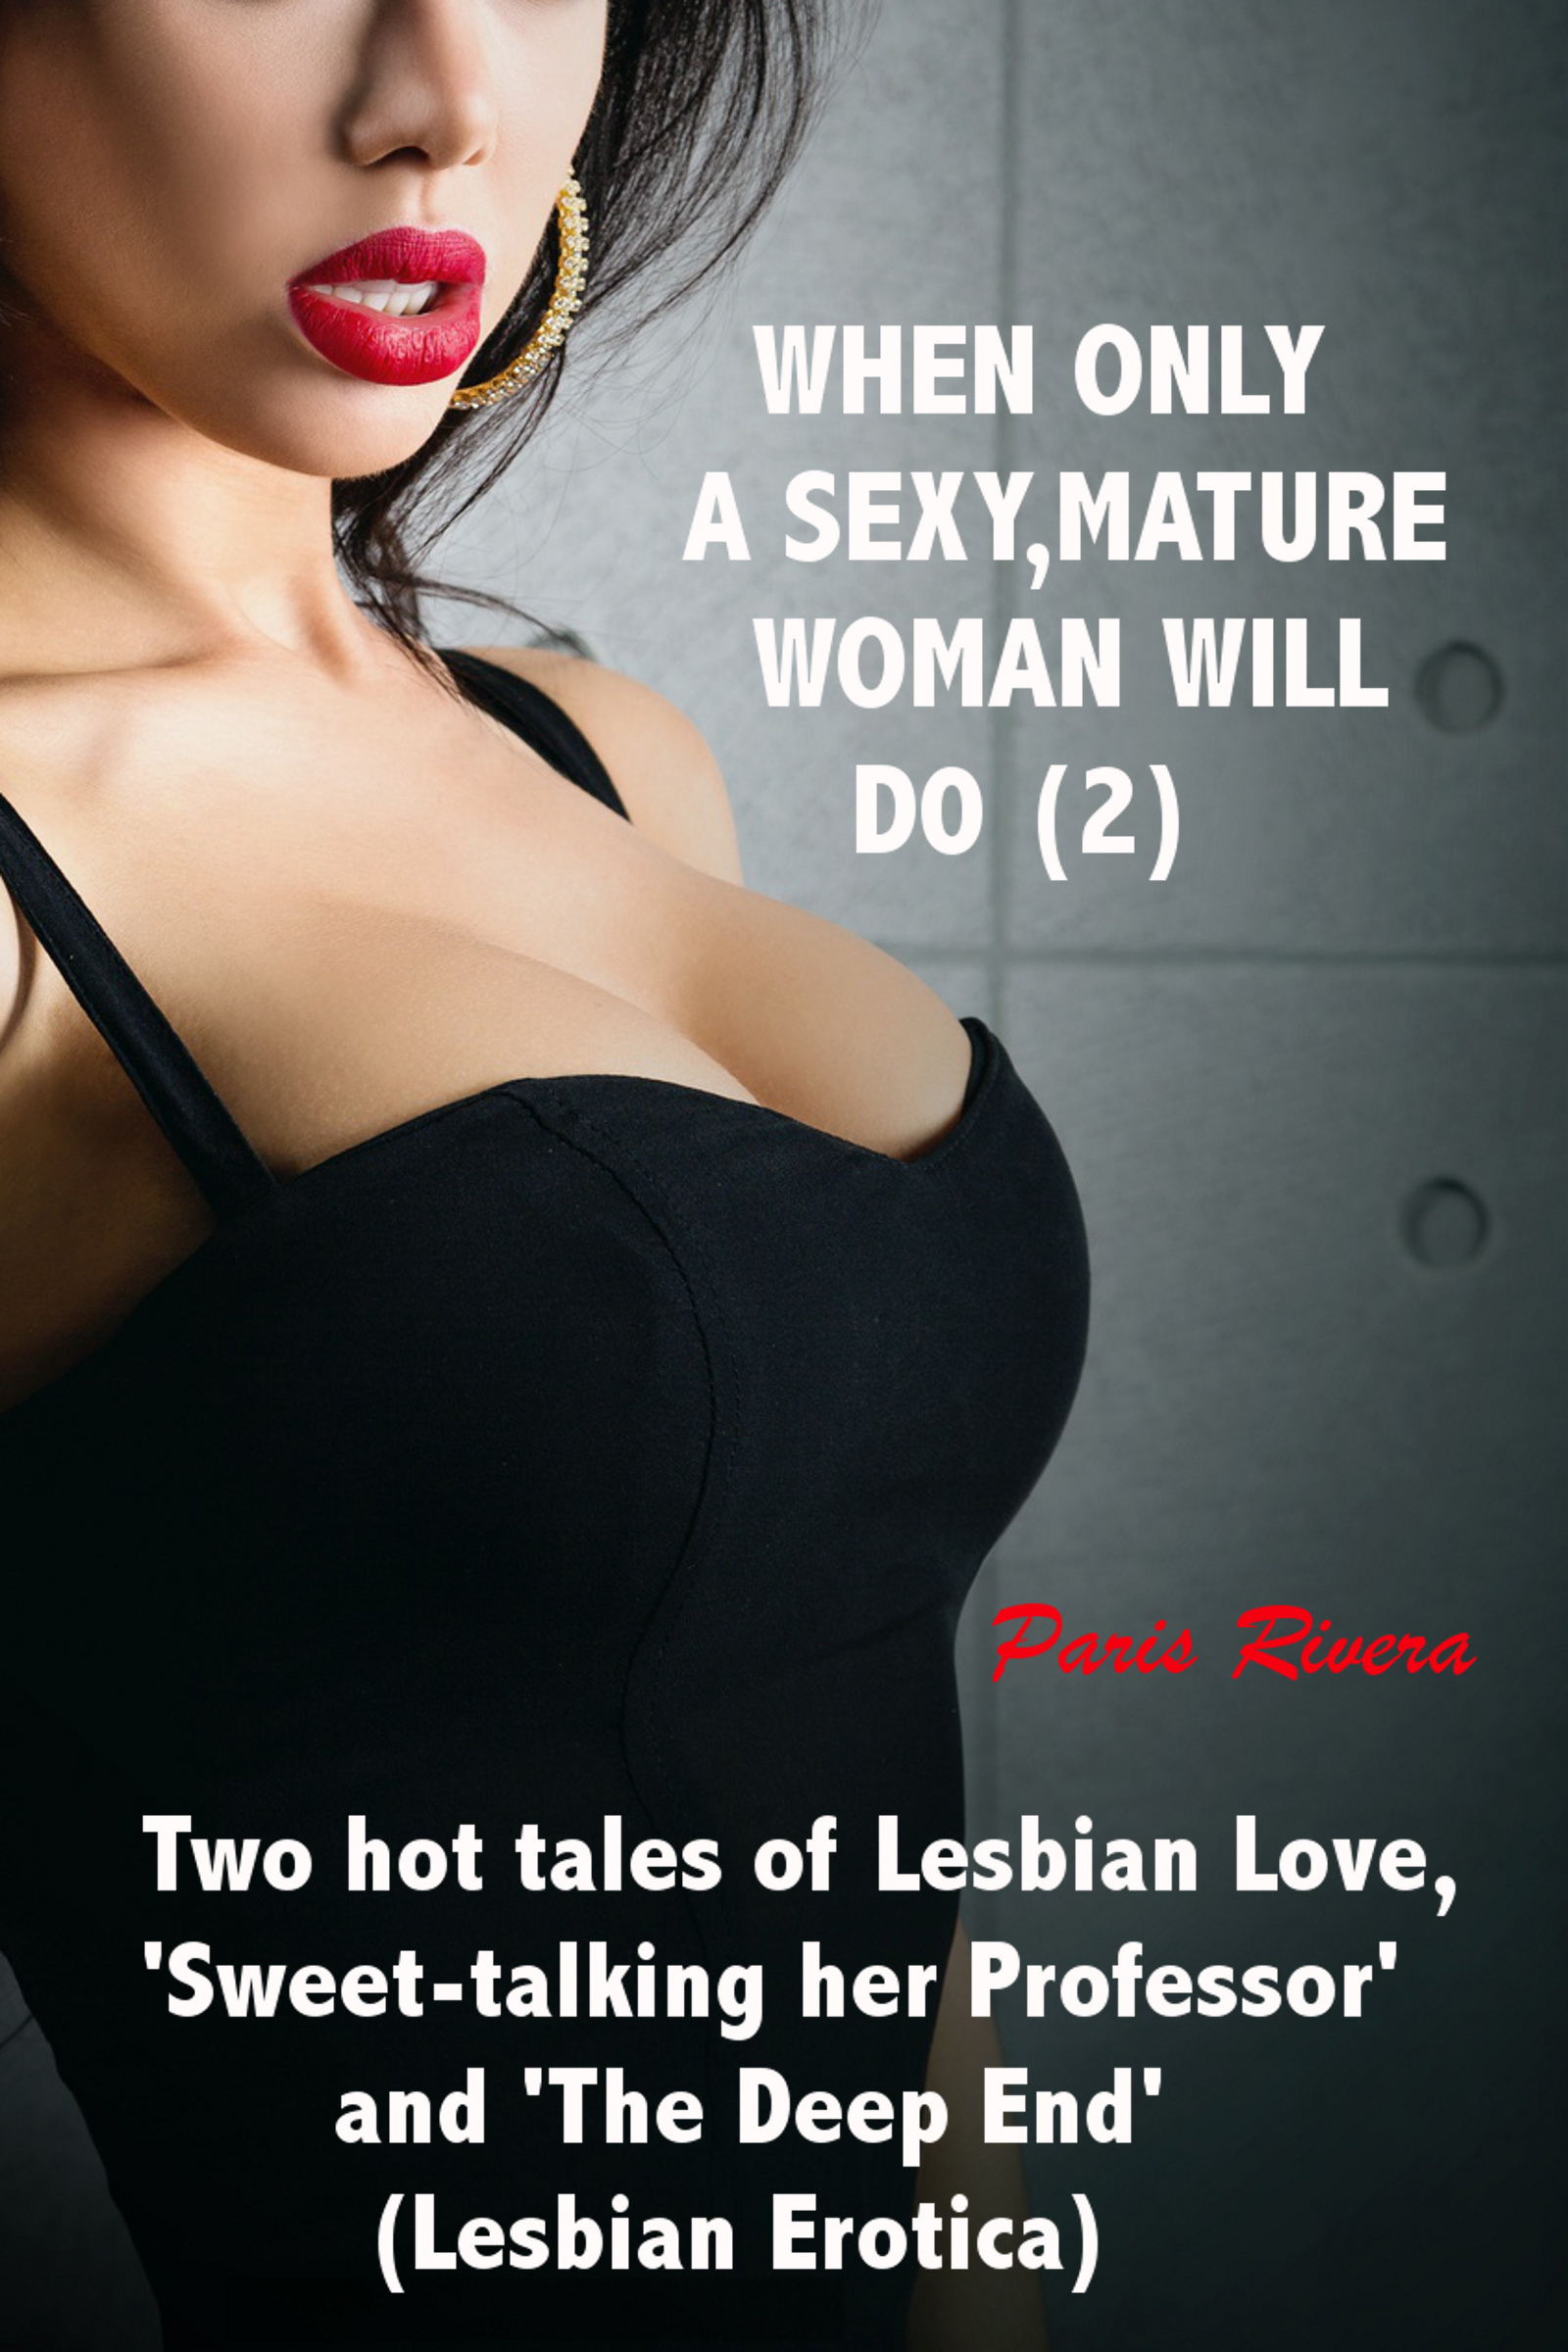 Paris Rivera - When Only a Sexy, Mature Woman Will Do (2): Two Hot Tales of Lesbian Love, 'Sweet-talking her Professor' and 'The Deep End'